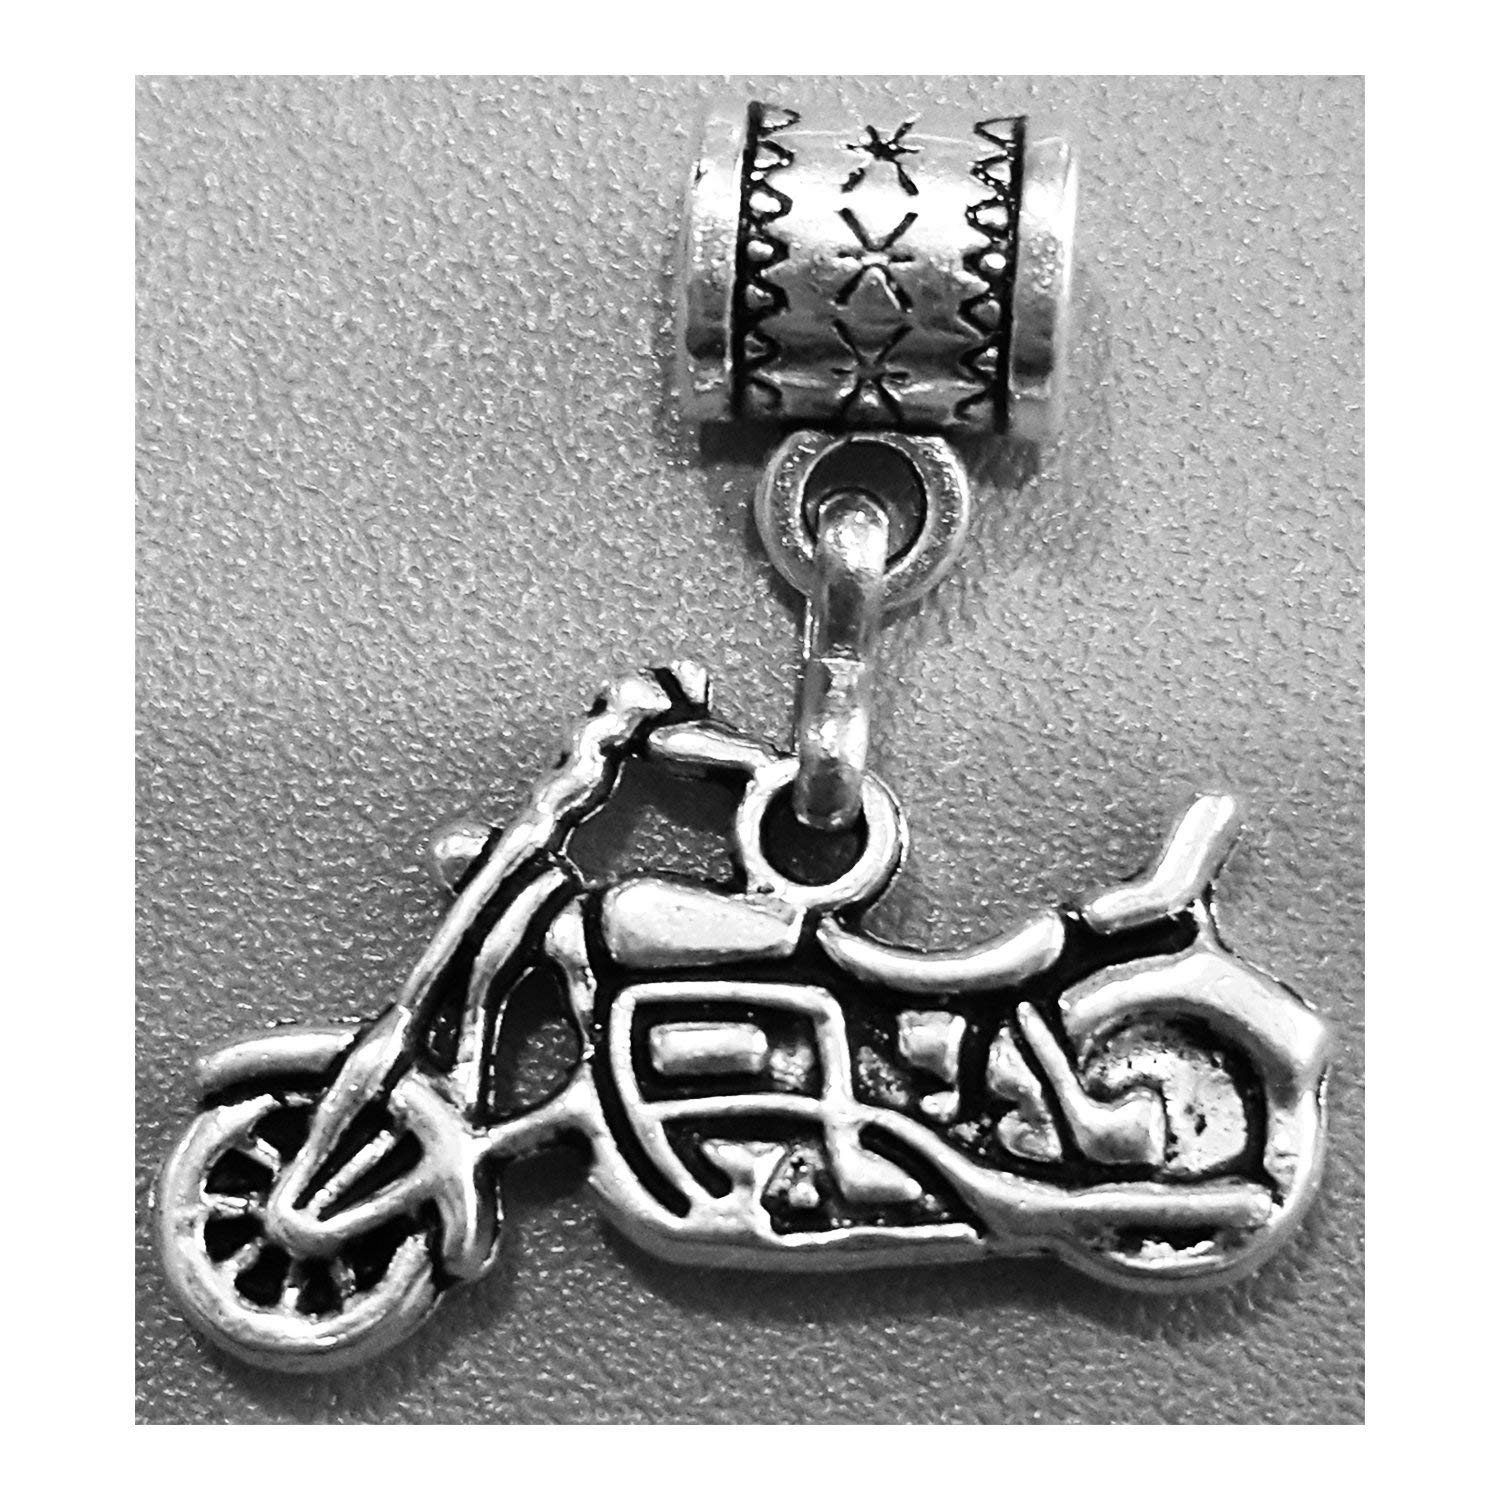 """Motorcycle charm"" in antique silver by Mossy Cabin for modern large hole snake chain charm bracelet, or add to a neck chain, pendant necklace or key chain"